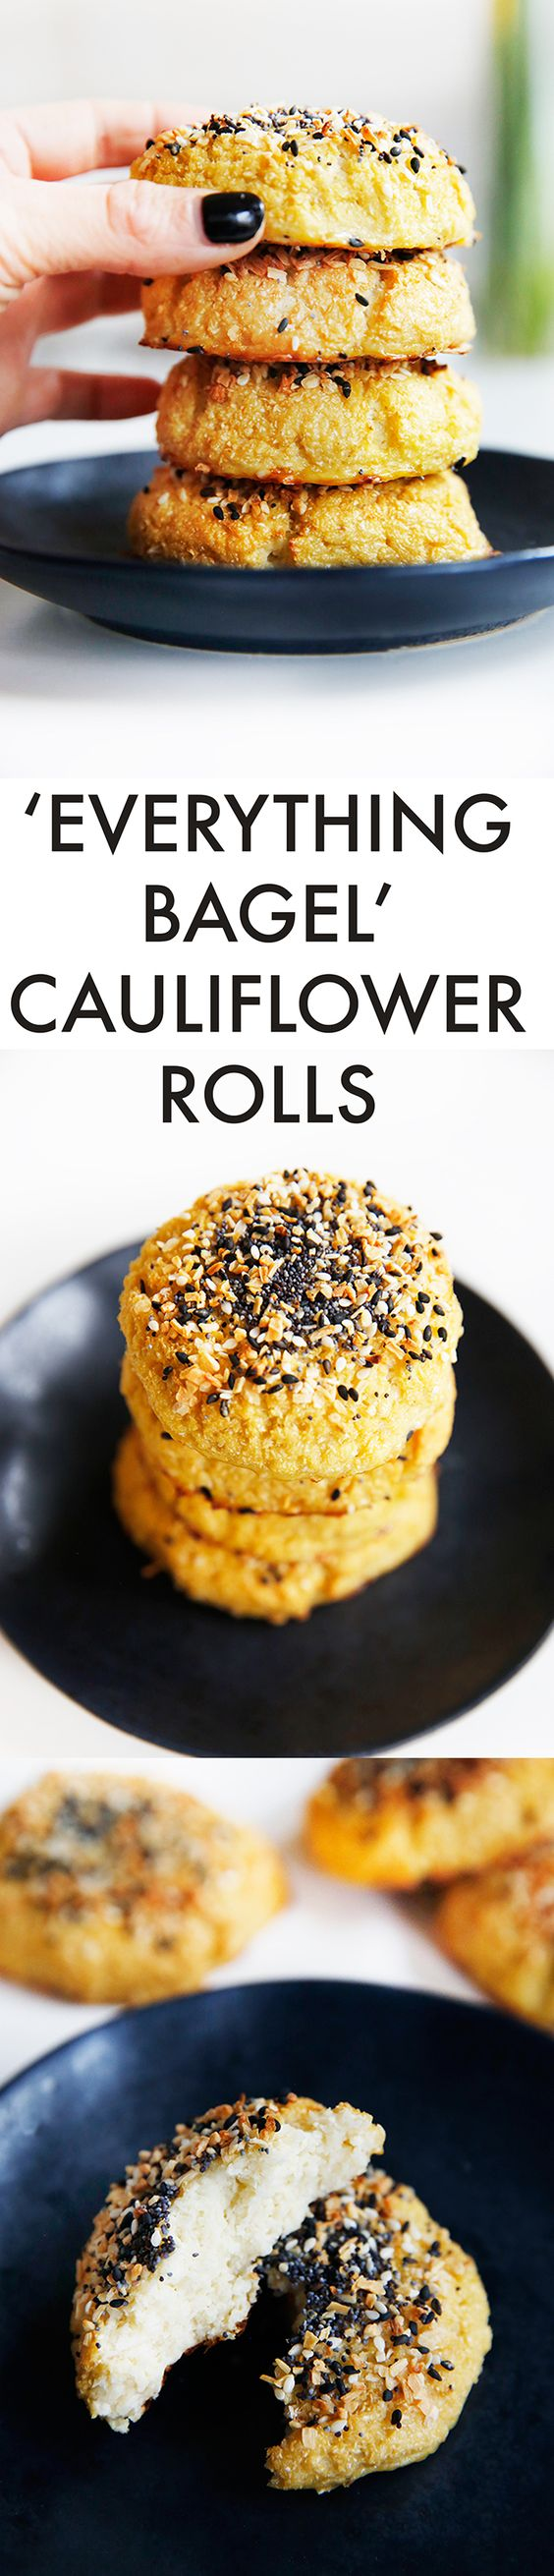 Everything Bagel Cauliflower Rolls {Low-carb, grain-free, paleo-friendly, no refined sugar} | Lexi's Clean Kitchen